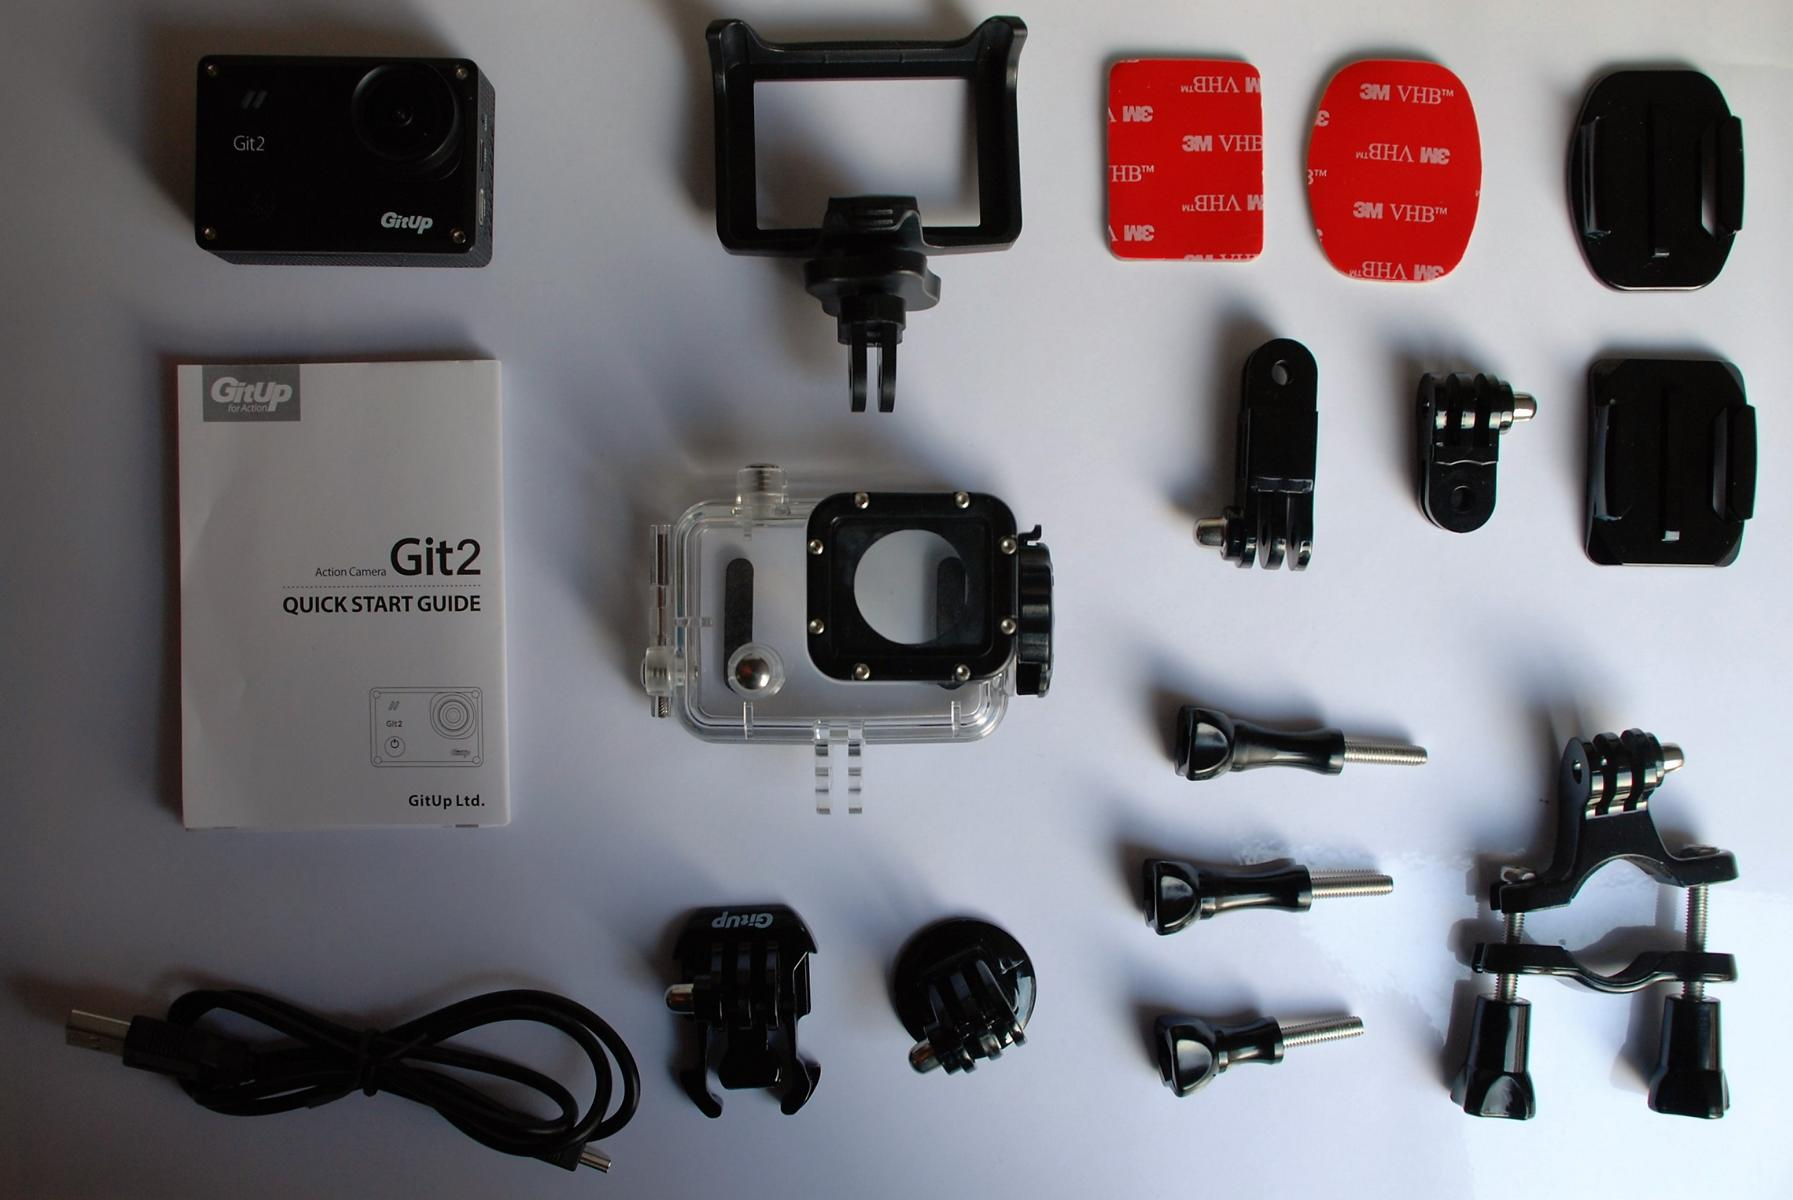 GitUp Git2 Pro Action Camera and additional accessories lying on a white table